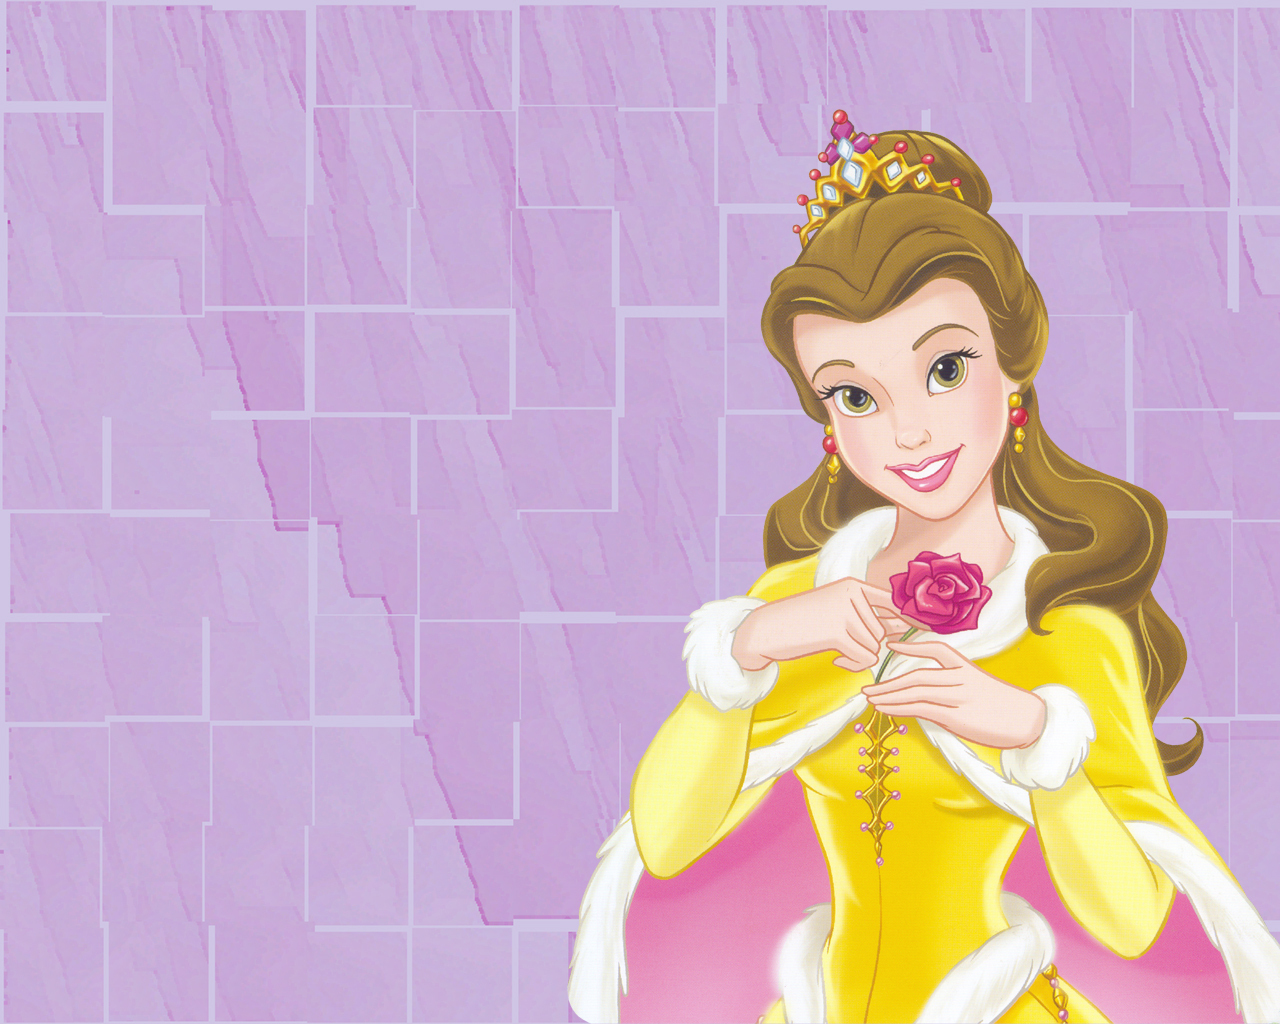 Disney Princess Images Belle HD Wallpaper And Background Photos